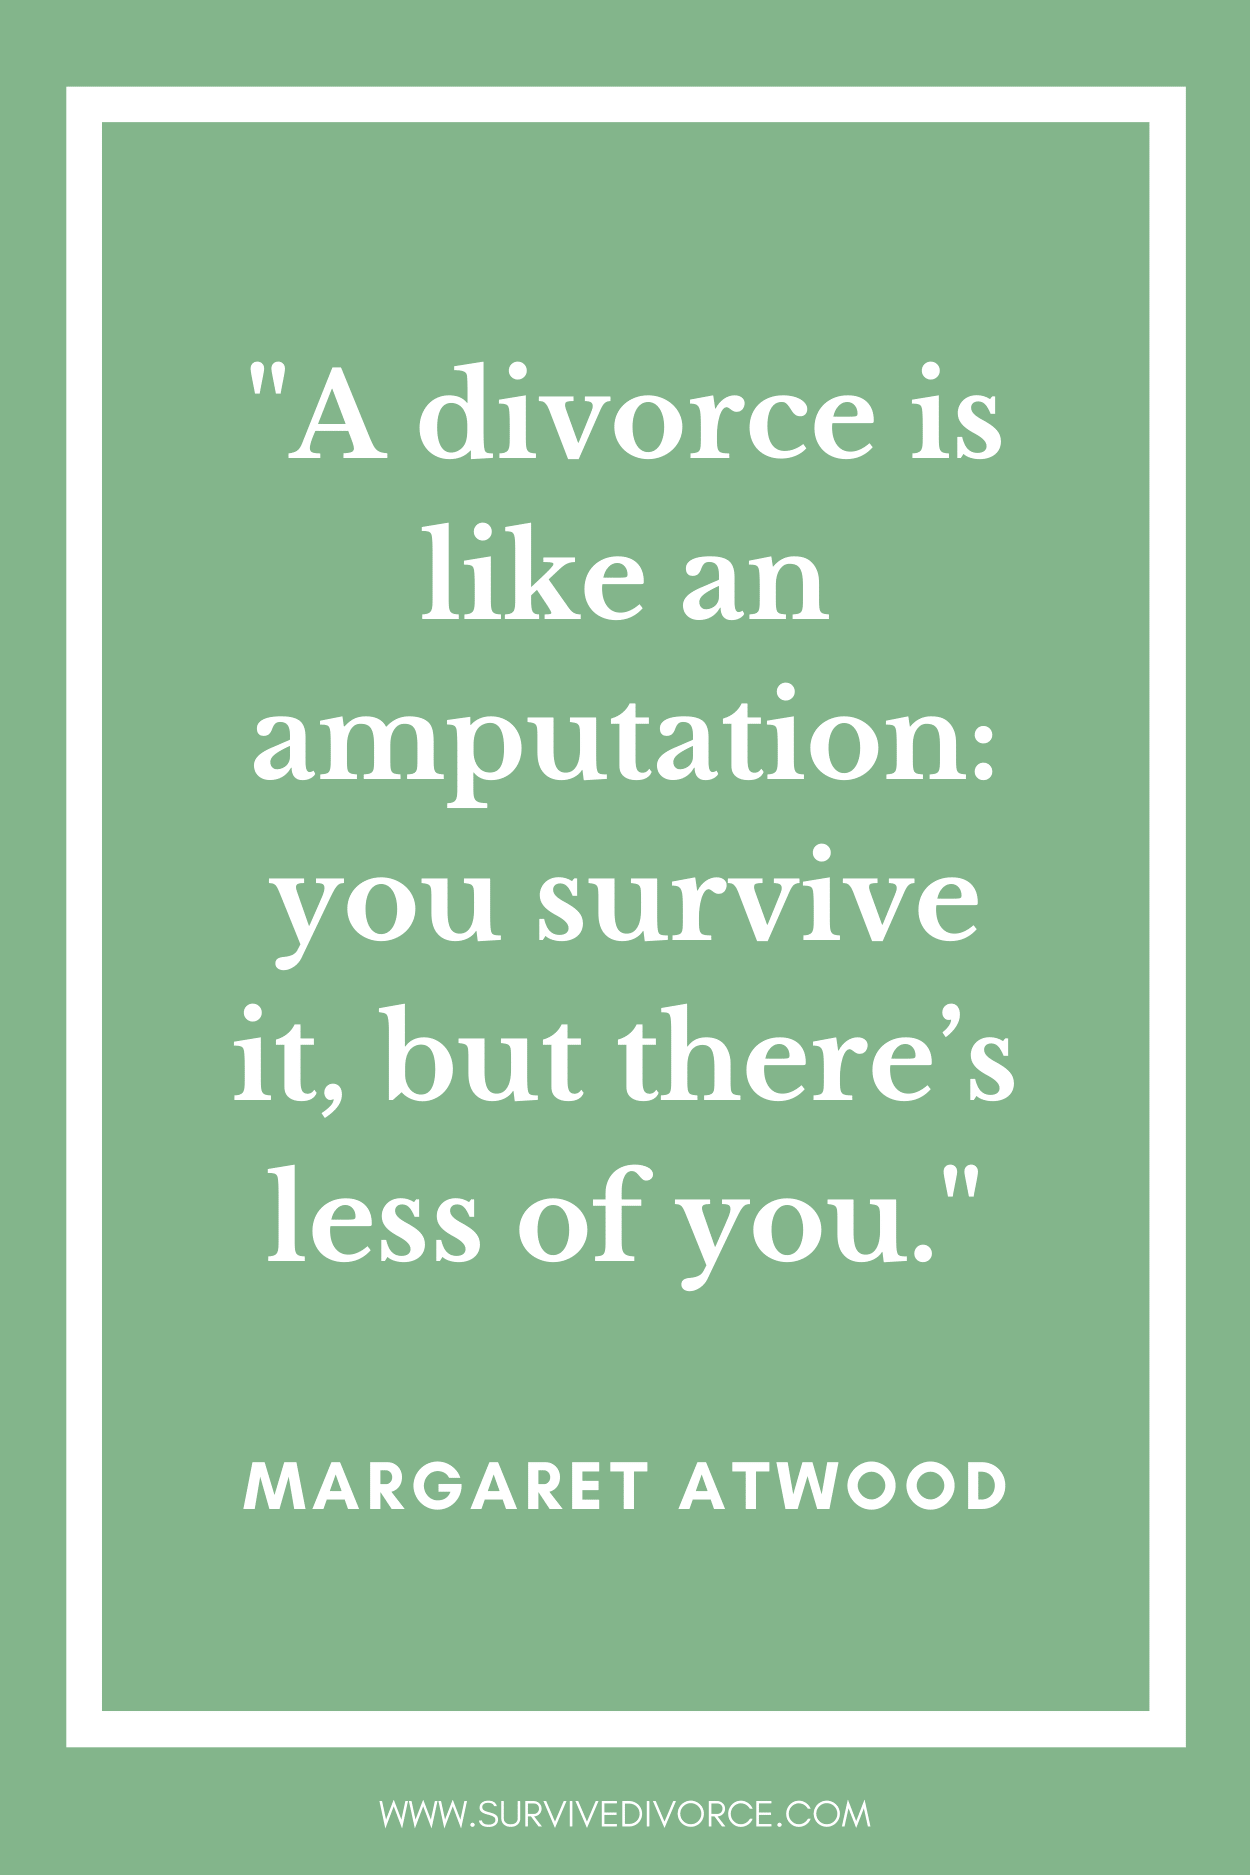 101 Inspirational Divorce Quotes to Help You Recover